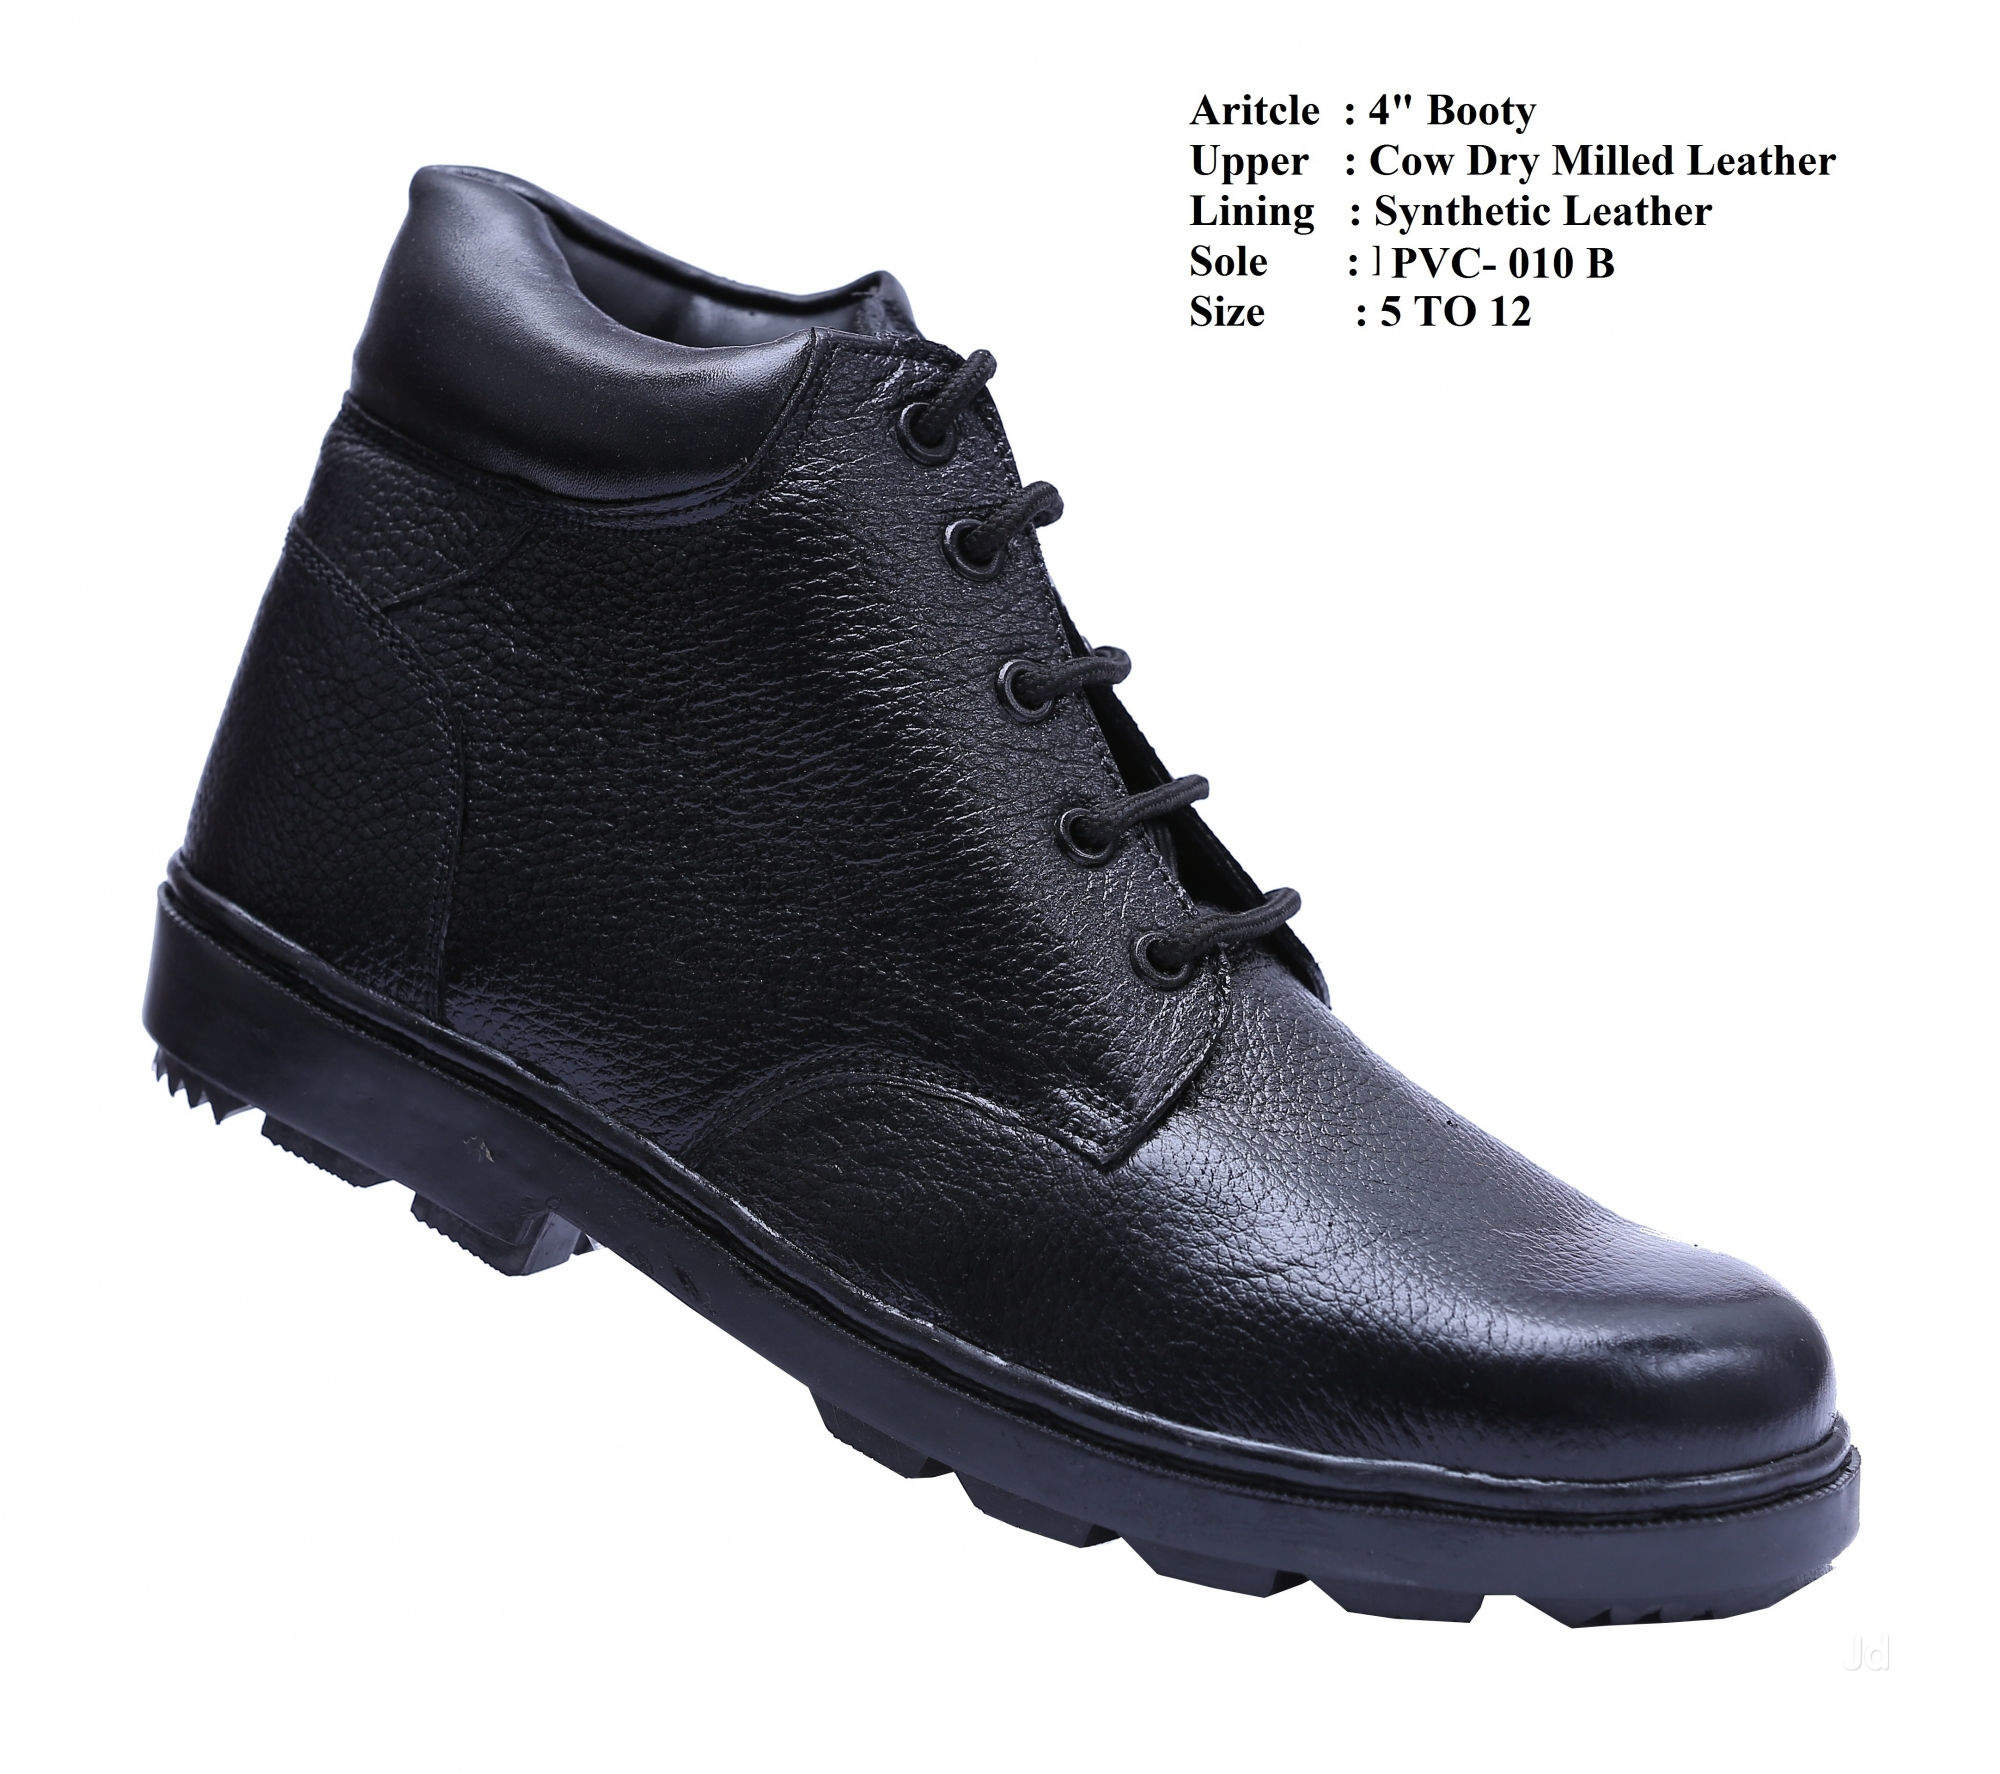 b6015e01e27b Top 100 Industrial Safety Shoe Dealers in Chennai - Best Labour ...